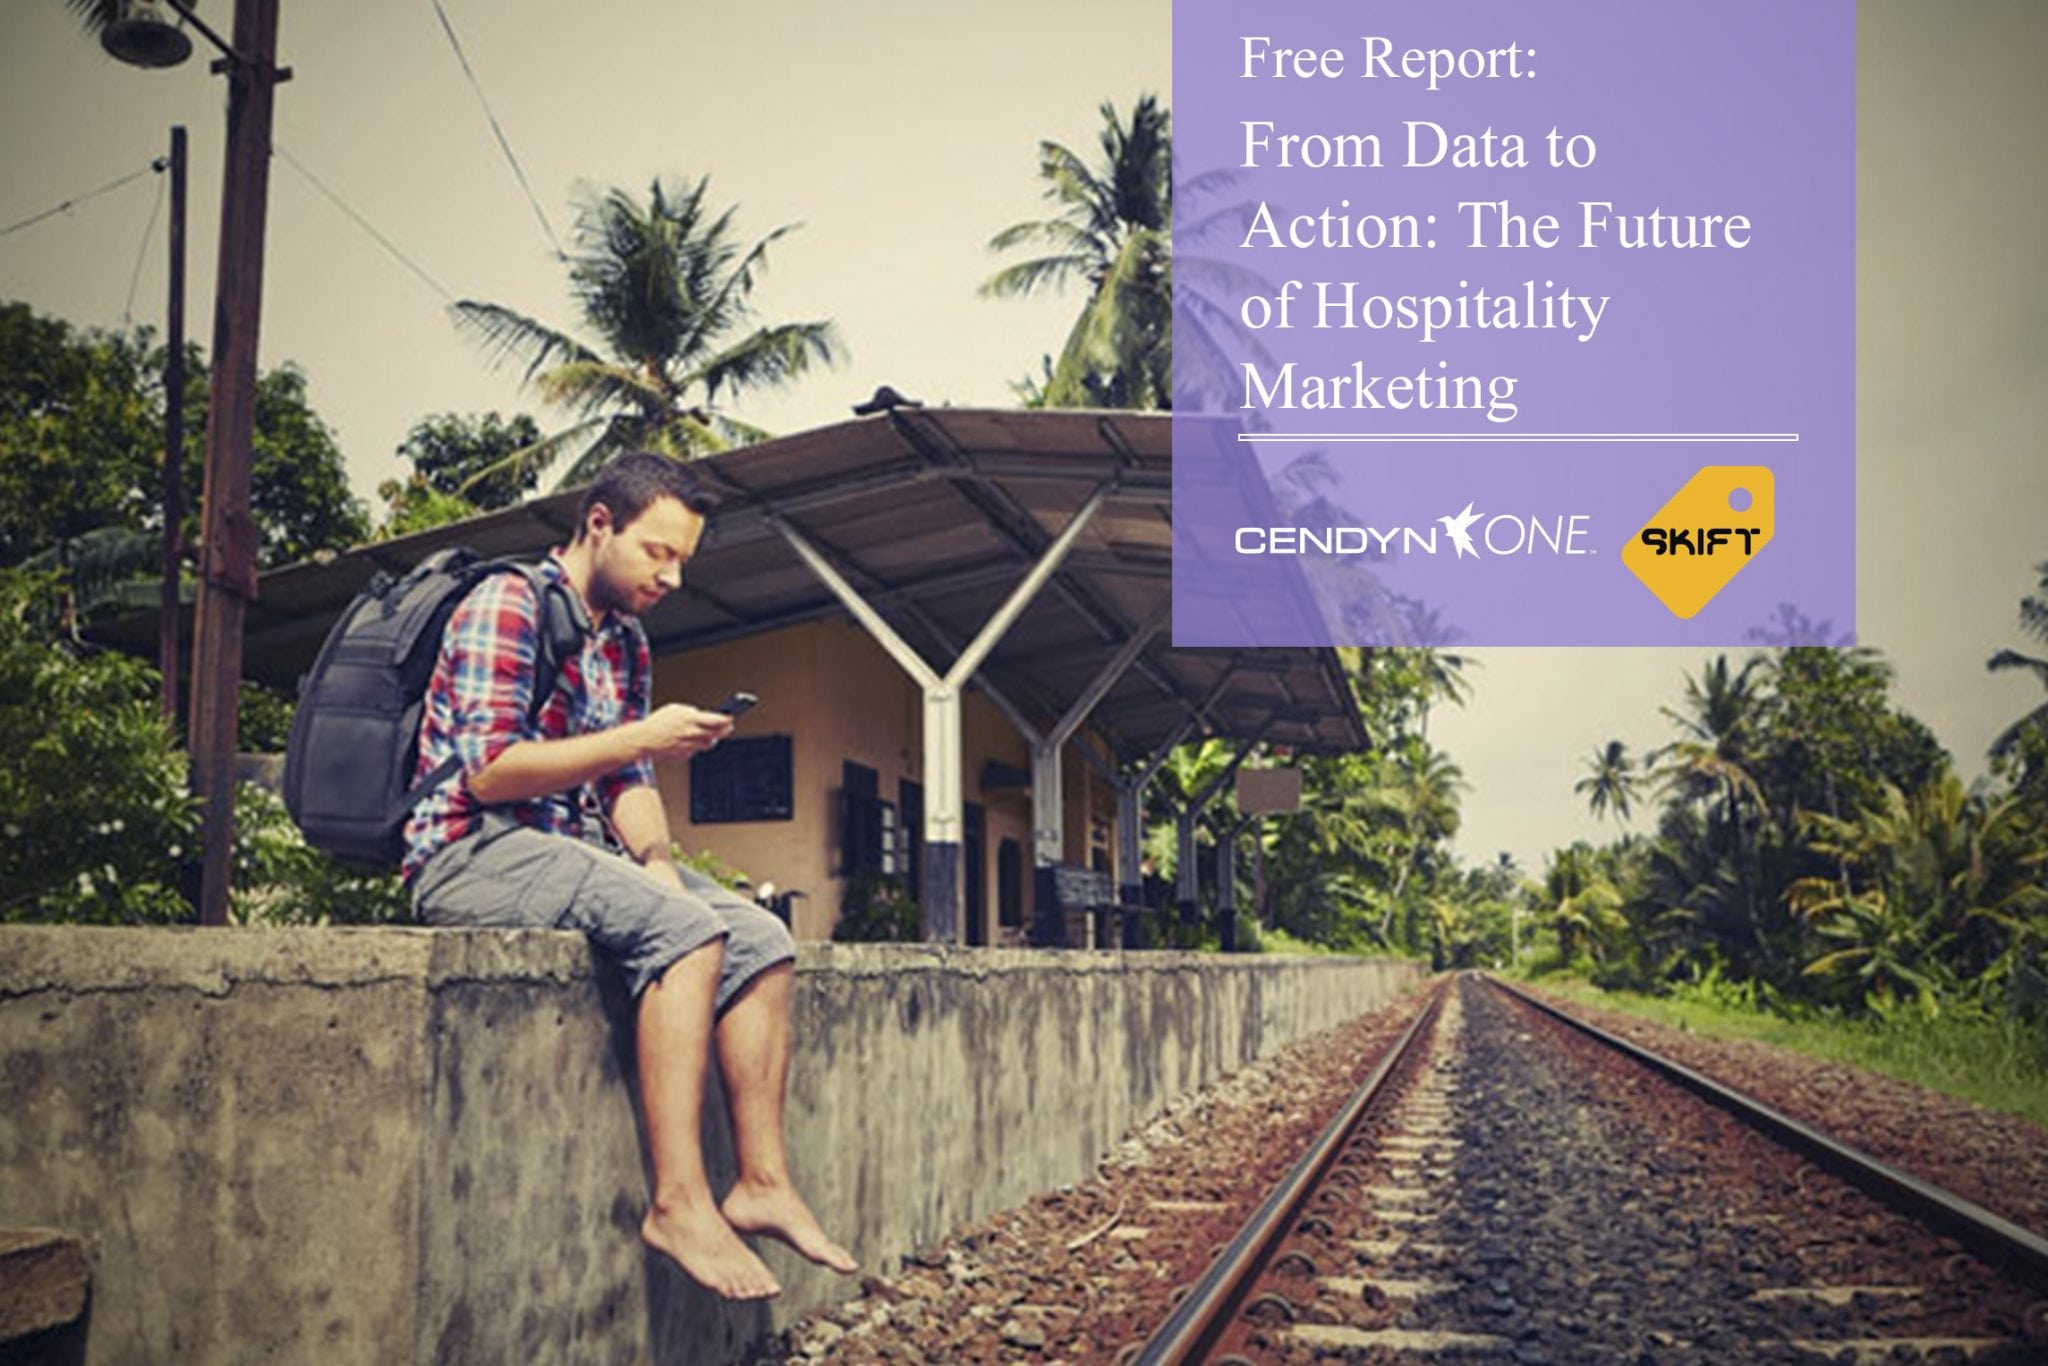 Free Skift Report: From Data to Action: The Future of Hospitality Marketing